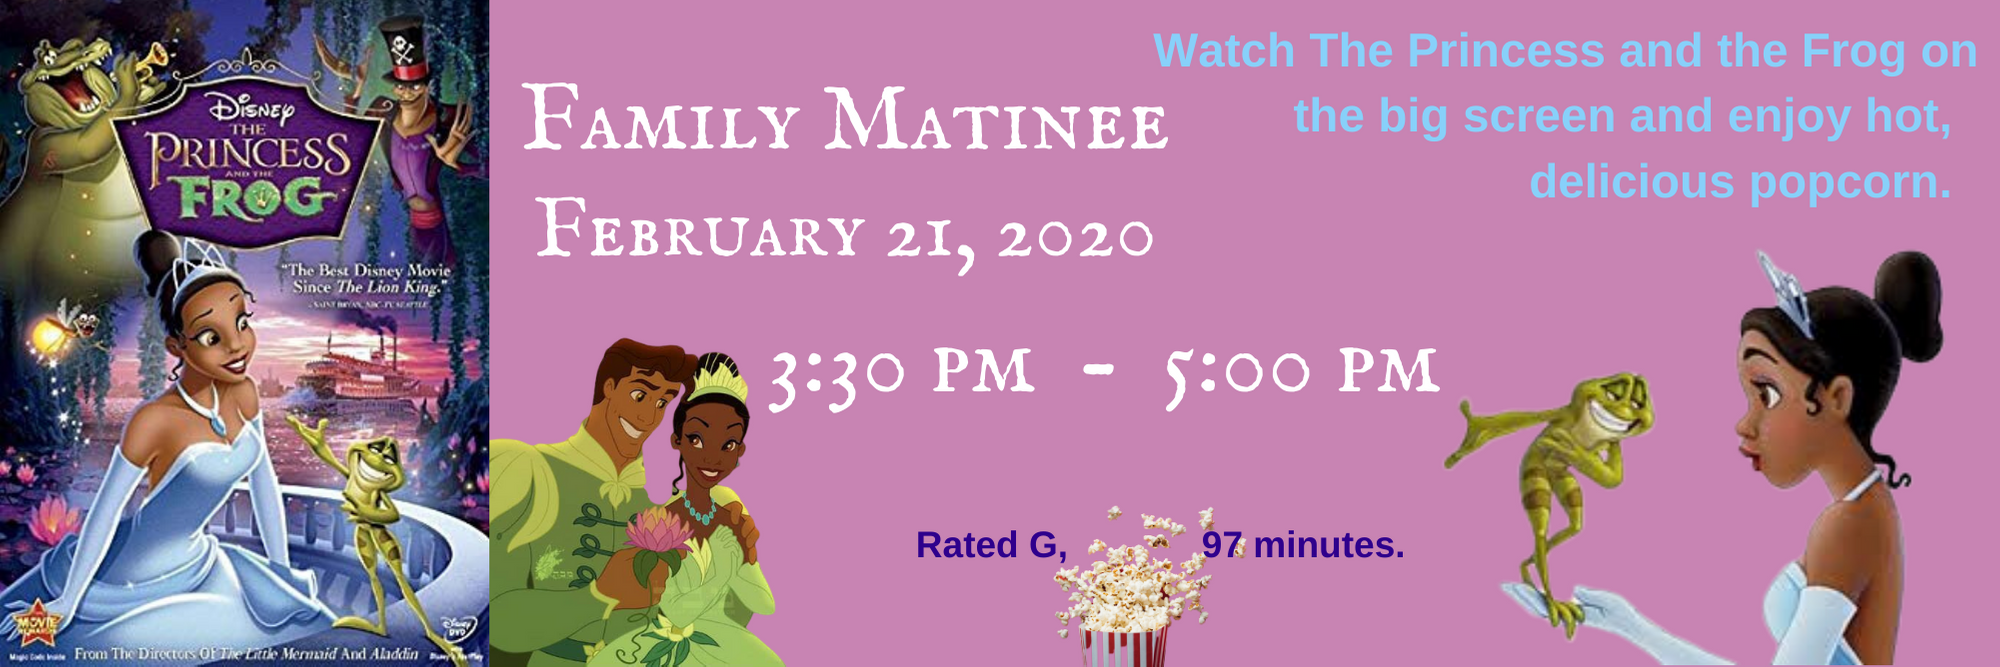 Friday Matinee - The Princess and the Frog @ MCCLS | Moultrie | Georgia | United States